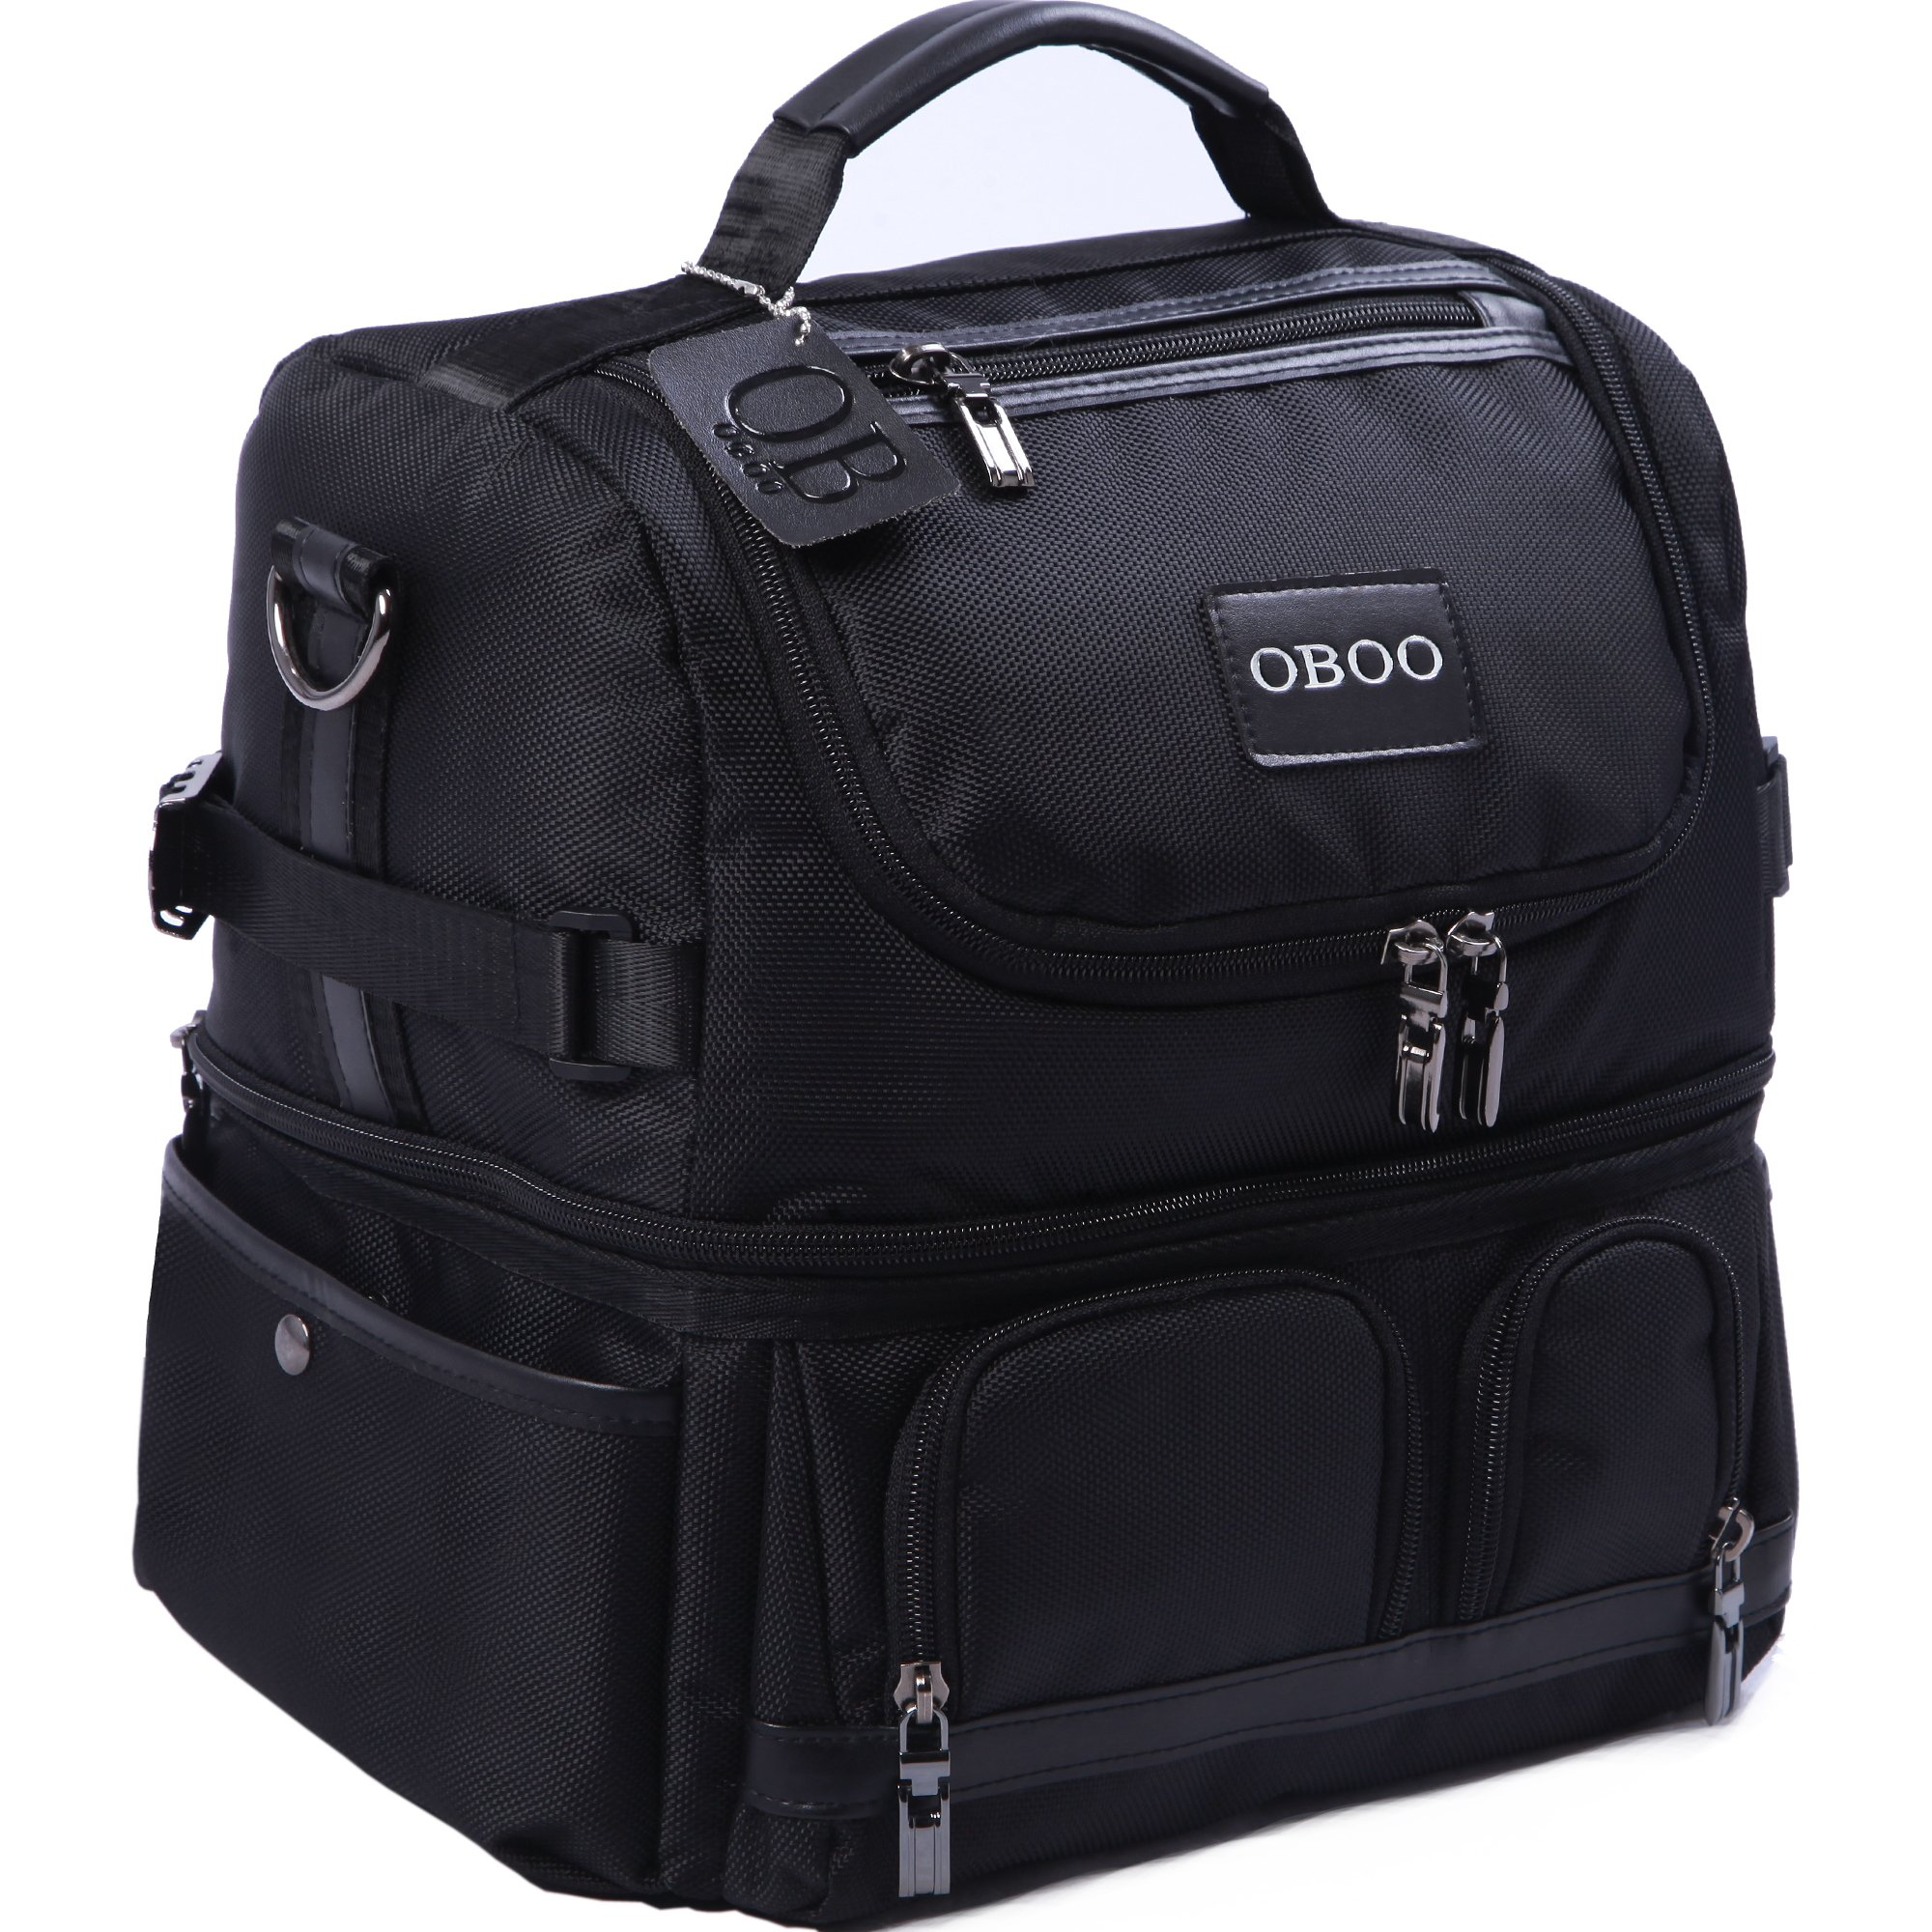 OBOO Adult Lunch Box Insulated Lunch Bag,Double Reusable Waterproof Large Cooler Tote with Shoulder Strap for Men&Women(black, 12can)